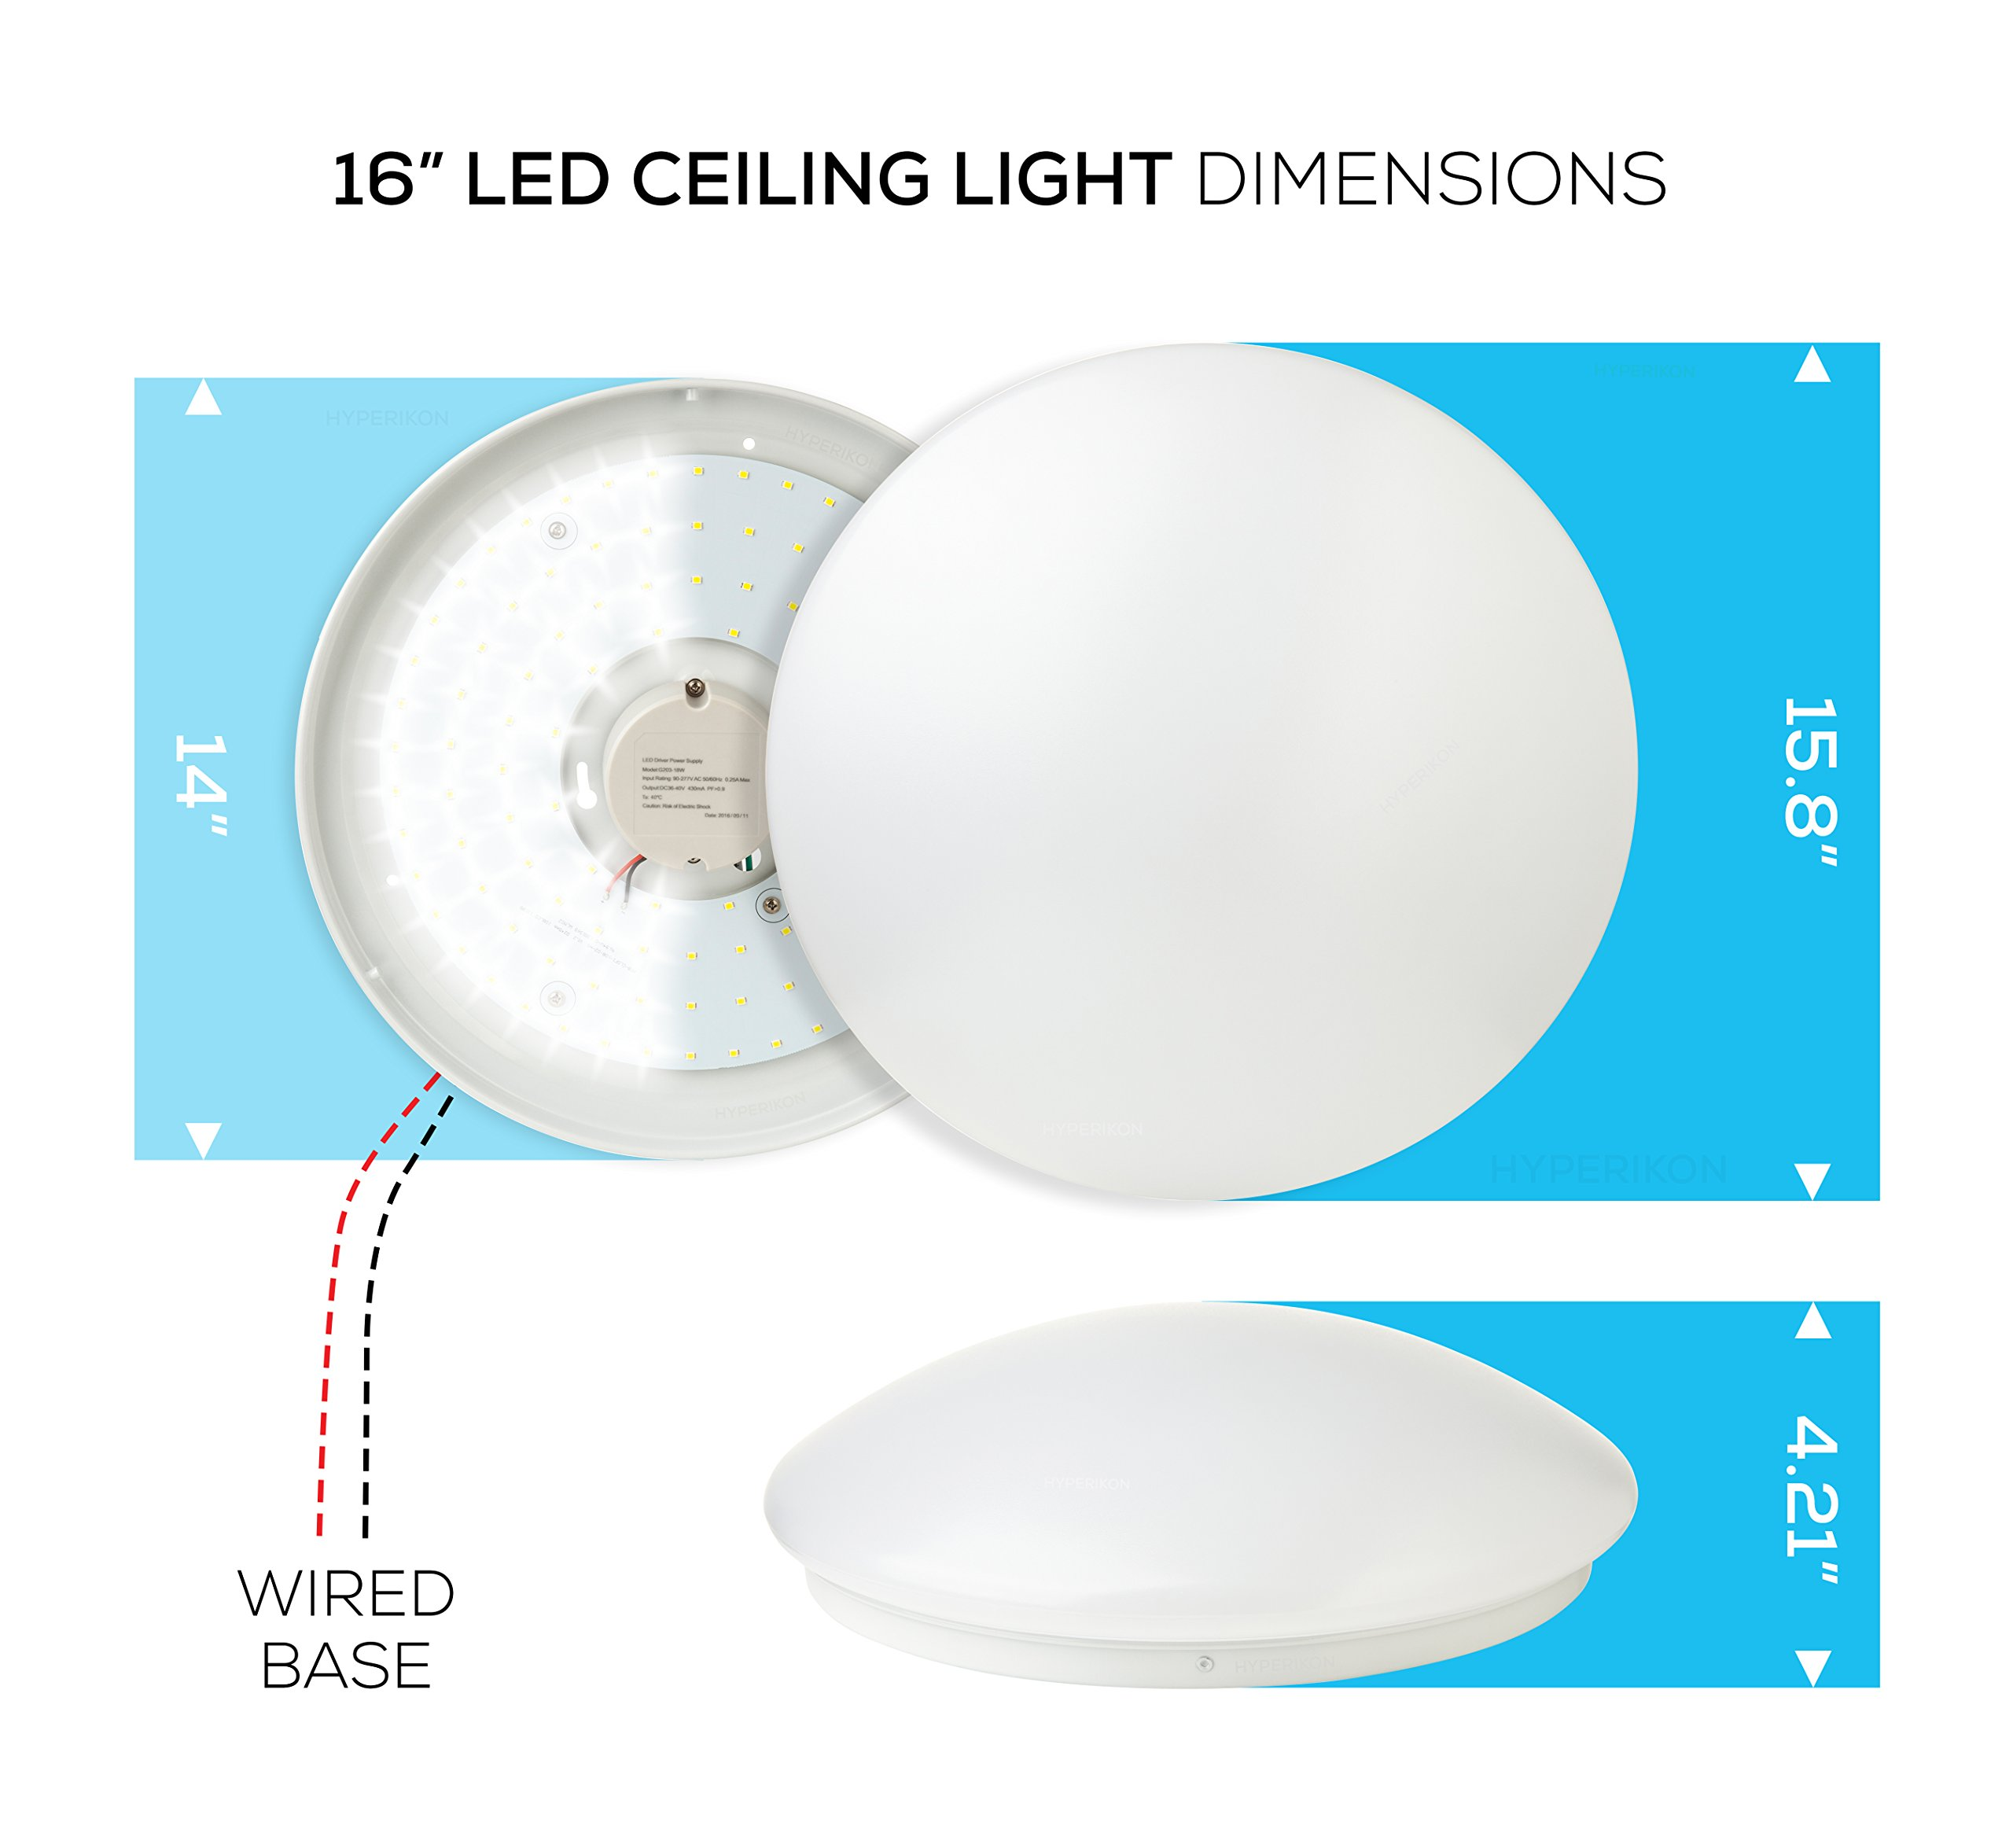 Hyperikon LED Flush Mount Ceiling Light, 16'', 35W (150W equivalent), 3100lm, 4000K (Daylight Glow), 120° Beam Angle, 120-240V, UL Listed, 16-Inch Flush Mount, Instant-On - (Pack of 4) by Hyperikon